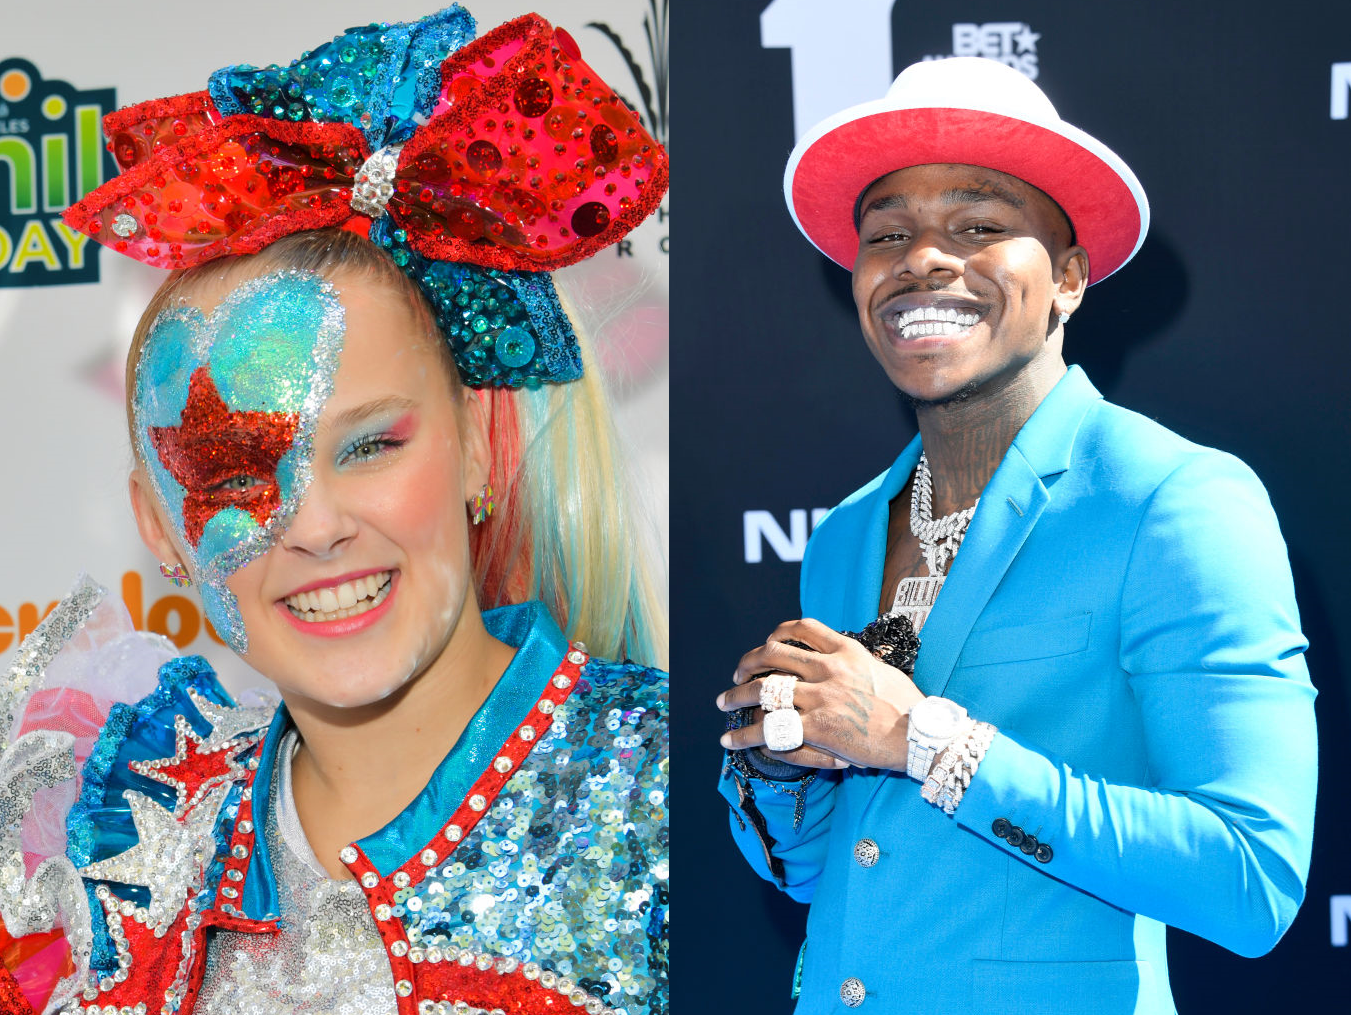 Jojo Siwa and DaBaby